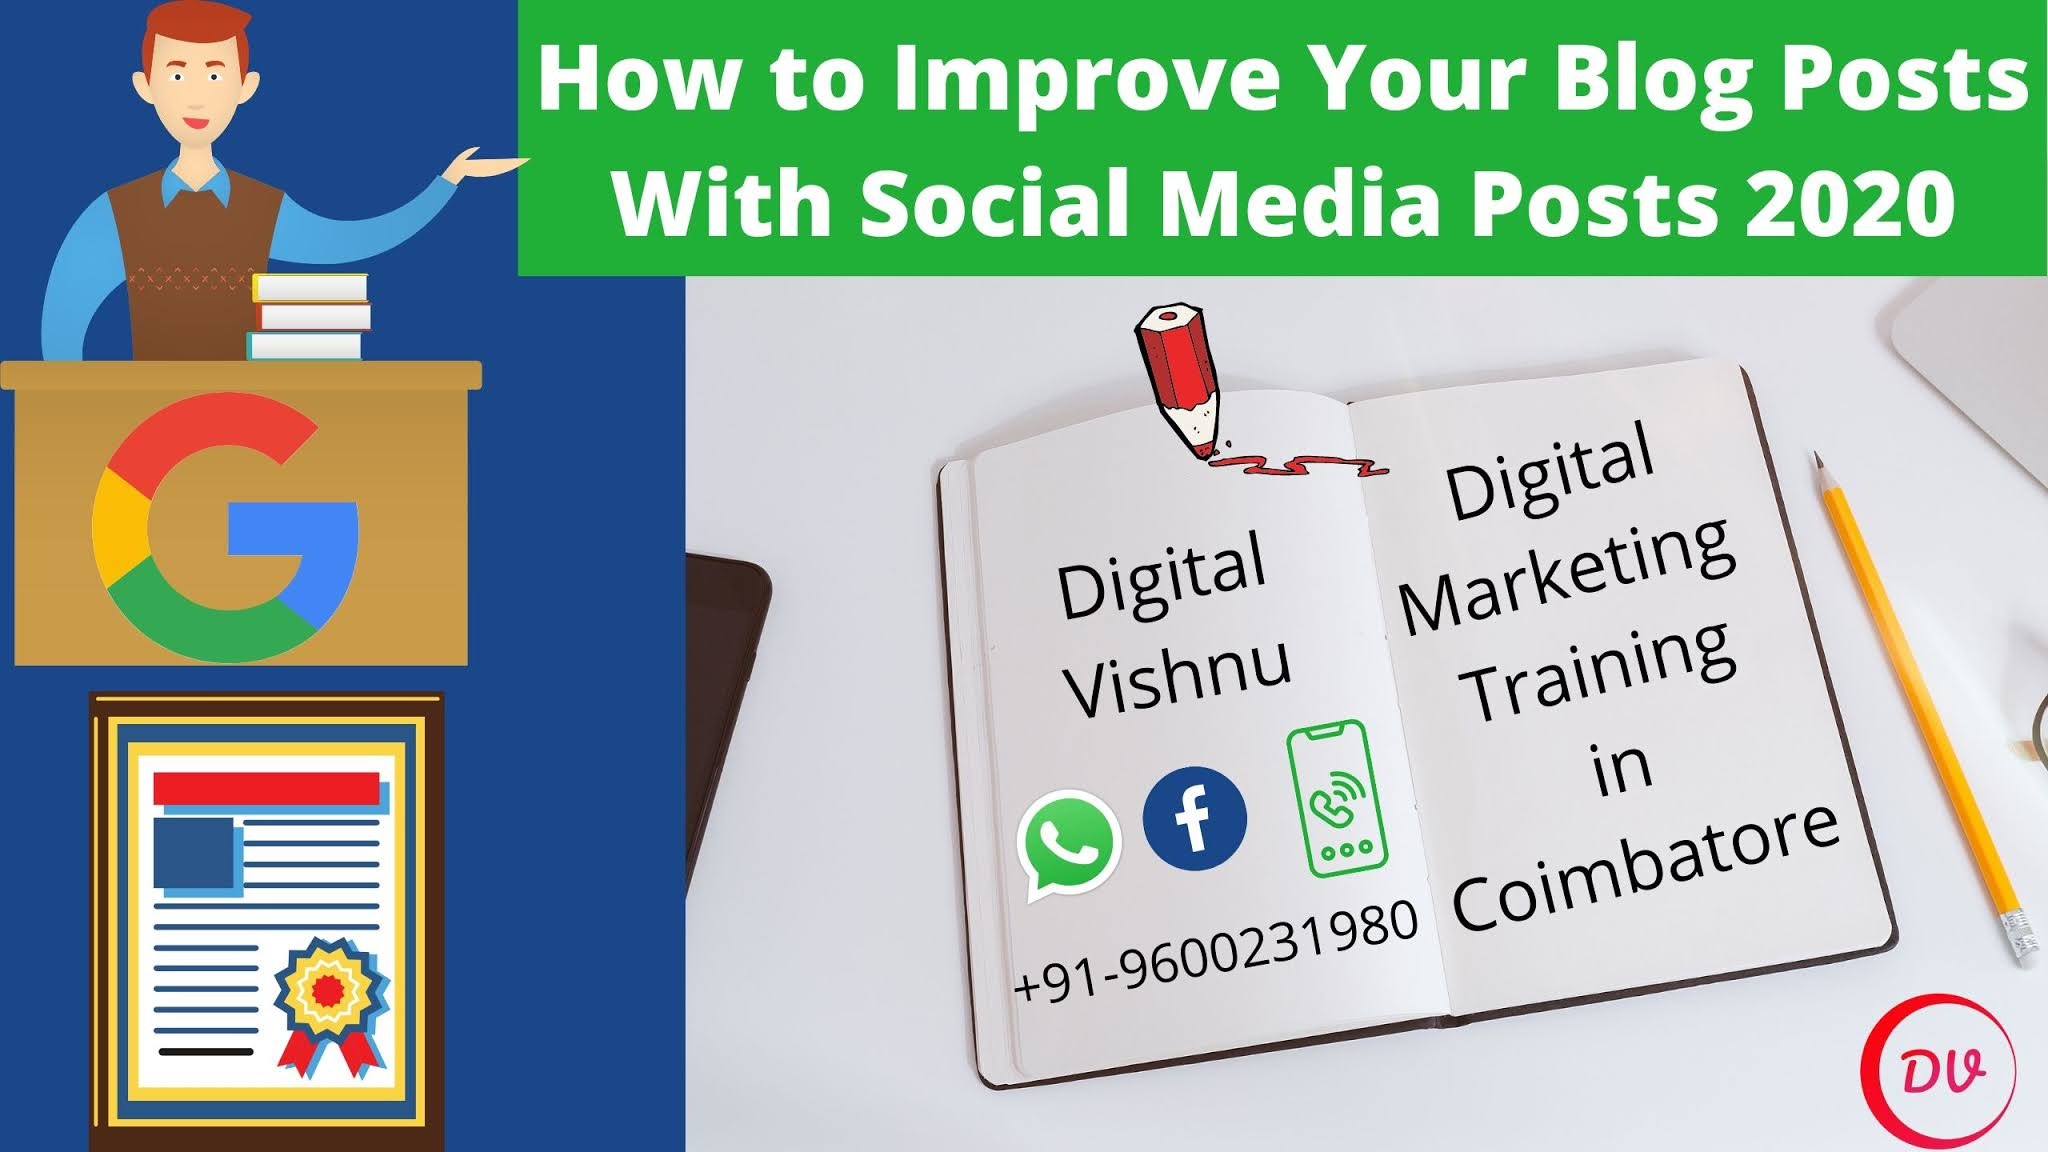 How to Improve Your Blog Posts With Social Media Posts 2020